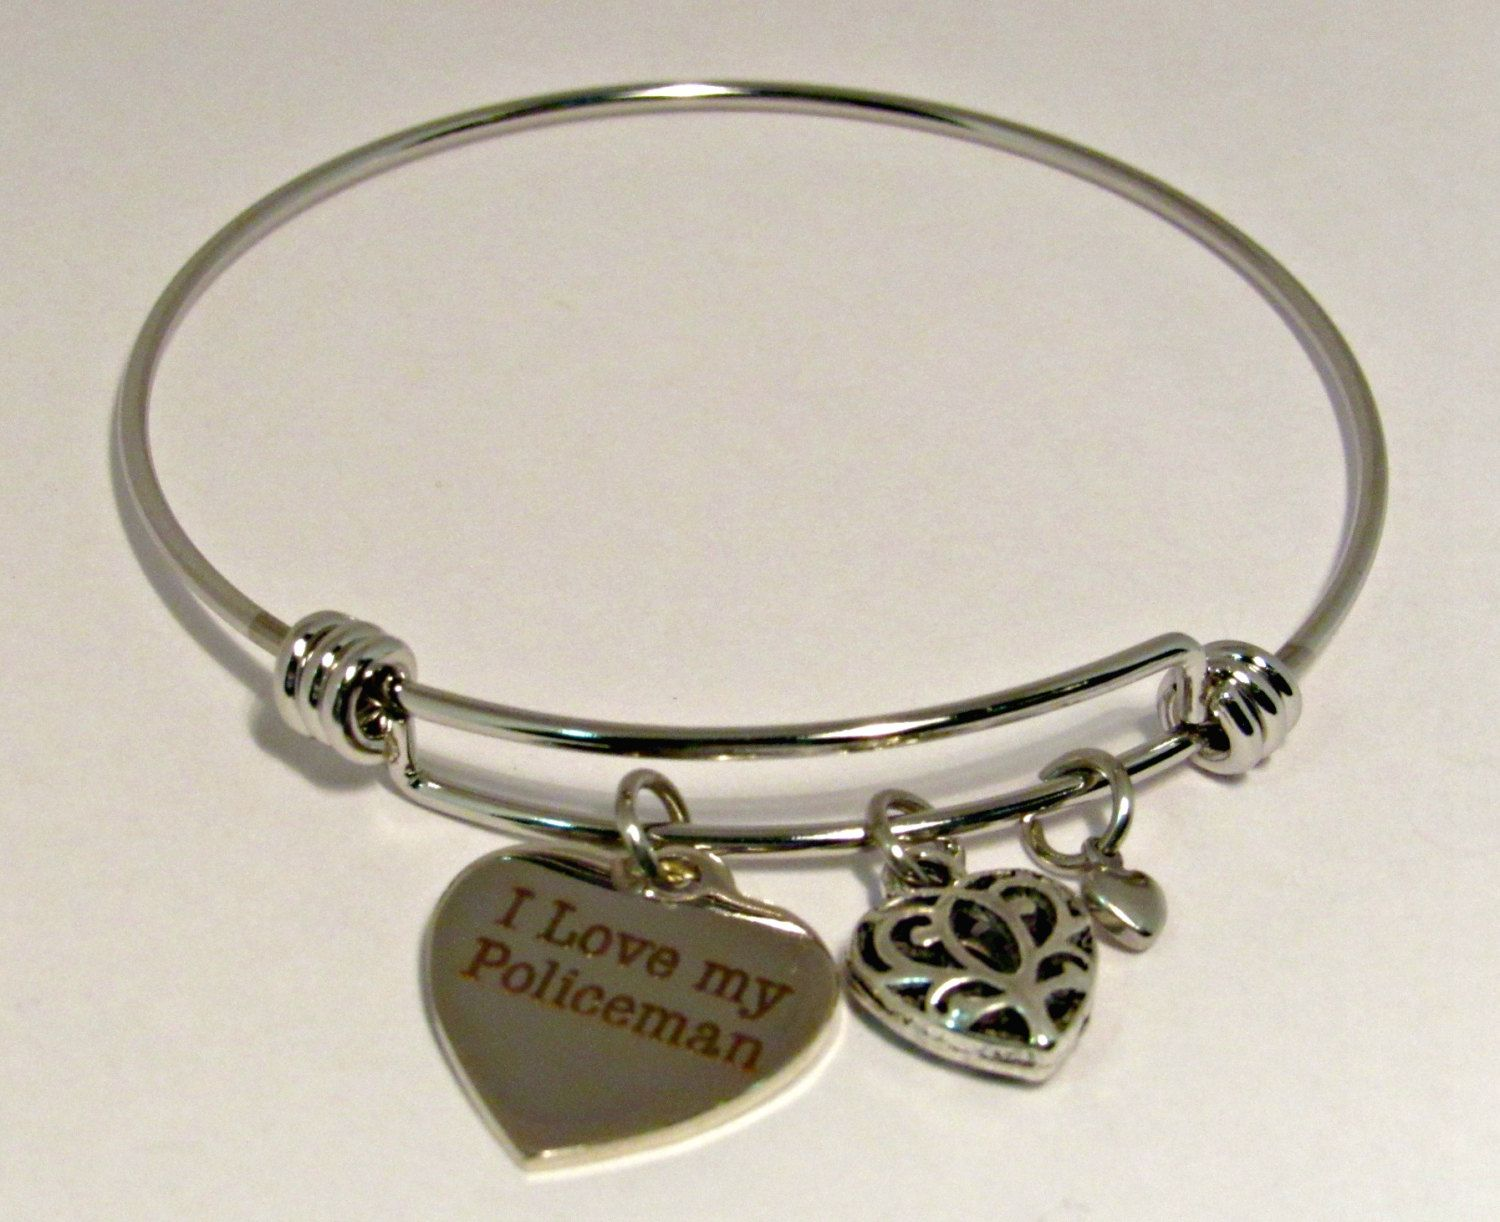 my stainless bracelet products bangle wire bangles adjustable steel bracelets fireman soul firefighter spirit charm